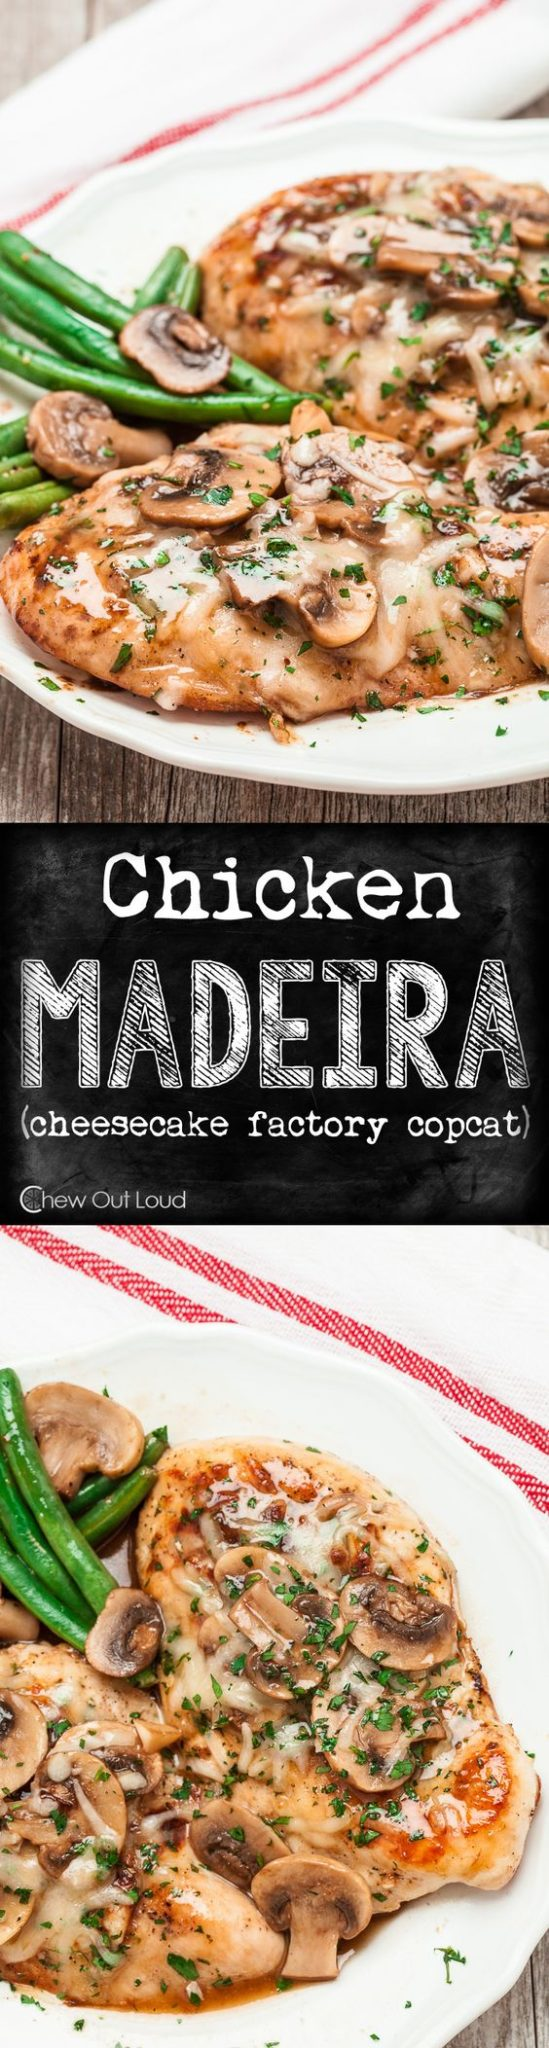 Chicken Recipes - Chicken Madeira - Cheesecake Factory Copycat Recipe via Chew Out Loud - This is SO delicious! #chickenrecipes #popularchickenrecipes #chicken #easychickenrecipes #chickenbreastrecipes #easylunches #easydinners #simplefamilymeals #simplefamilyrecipes #simplerecipes